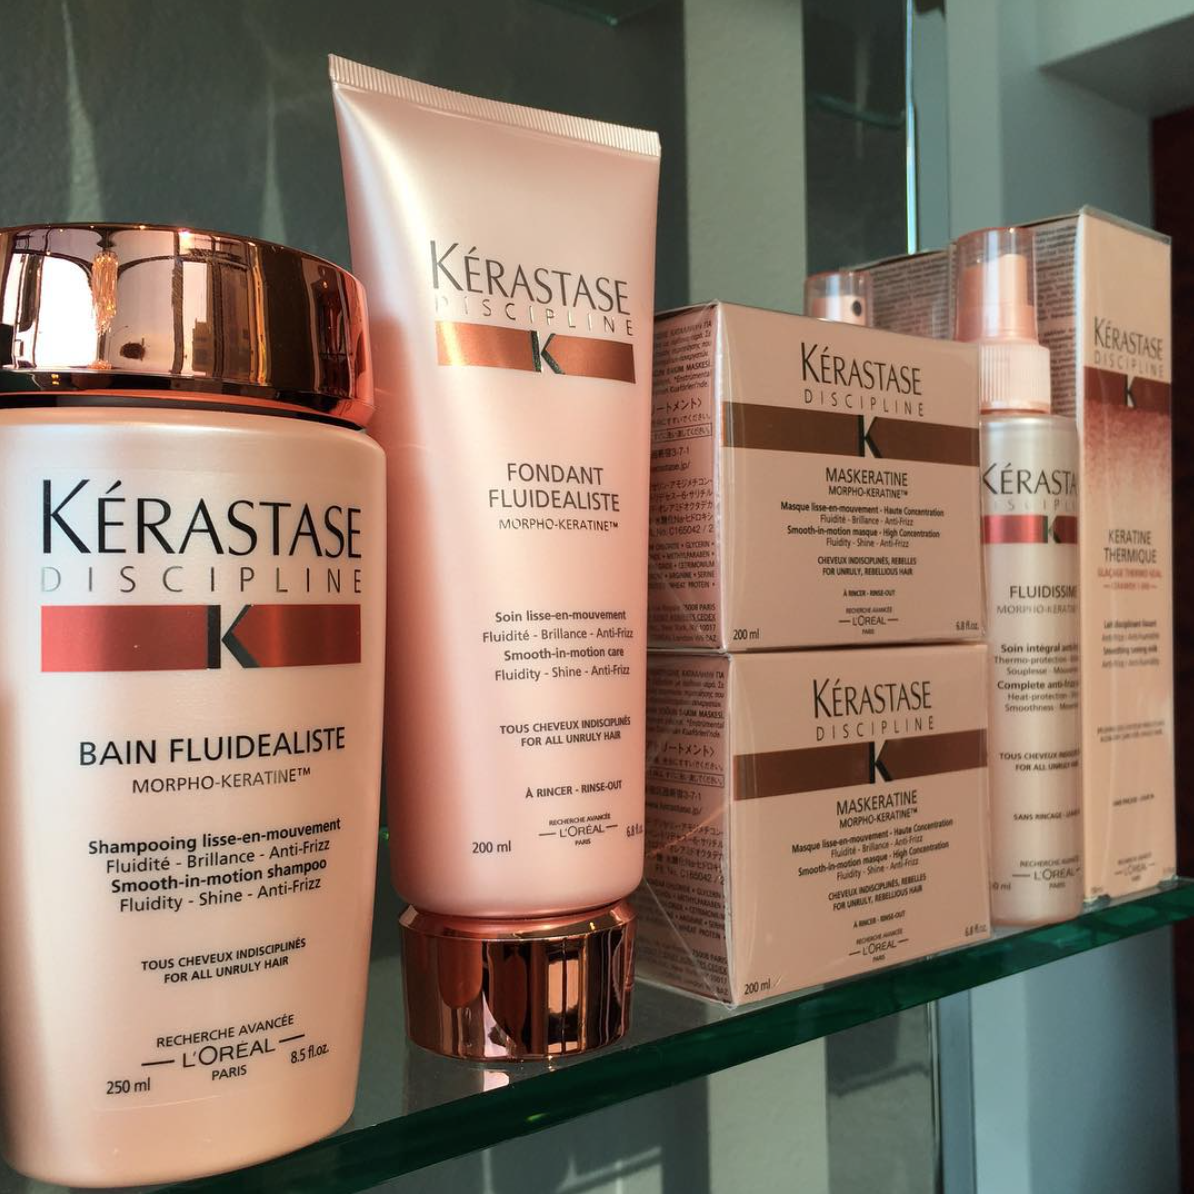 Kerastase Professional Hair Care